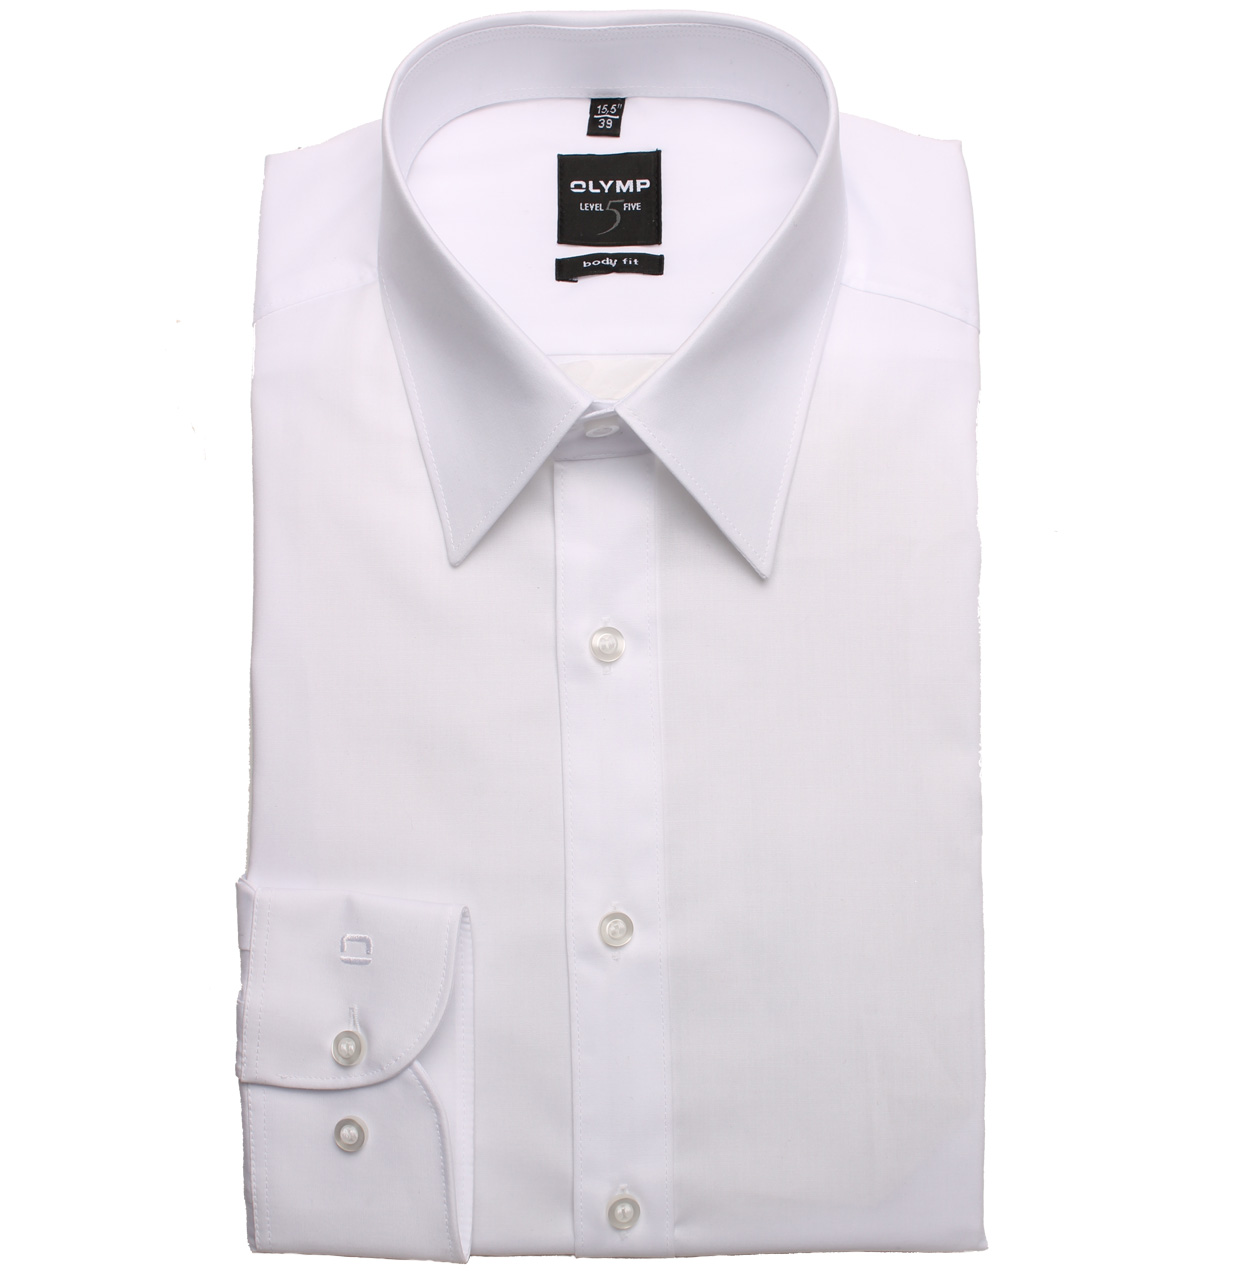 OLYMP Shirt 609064 00 weiss 609064 wit Maat 39